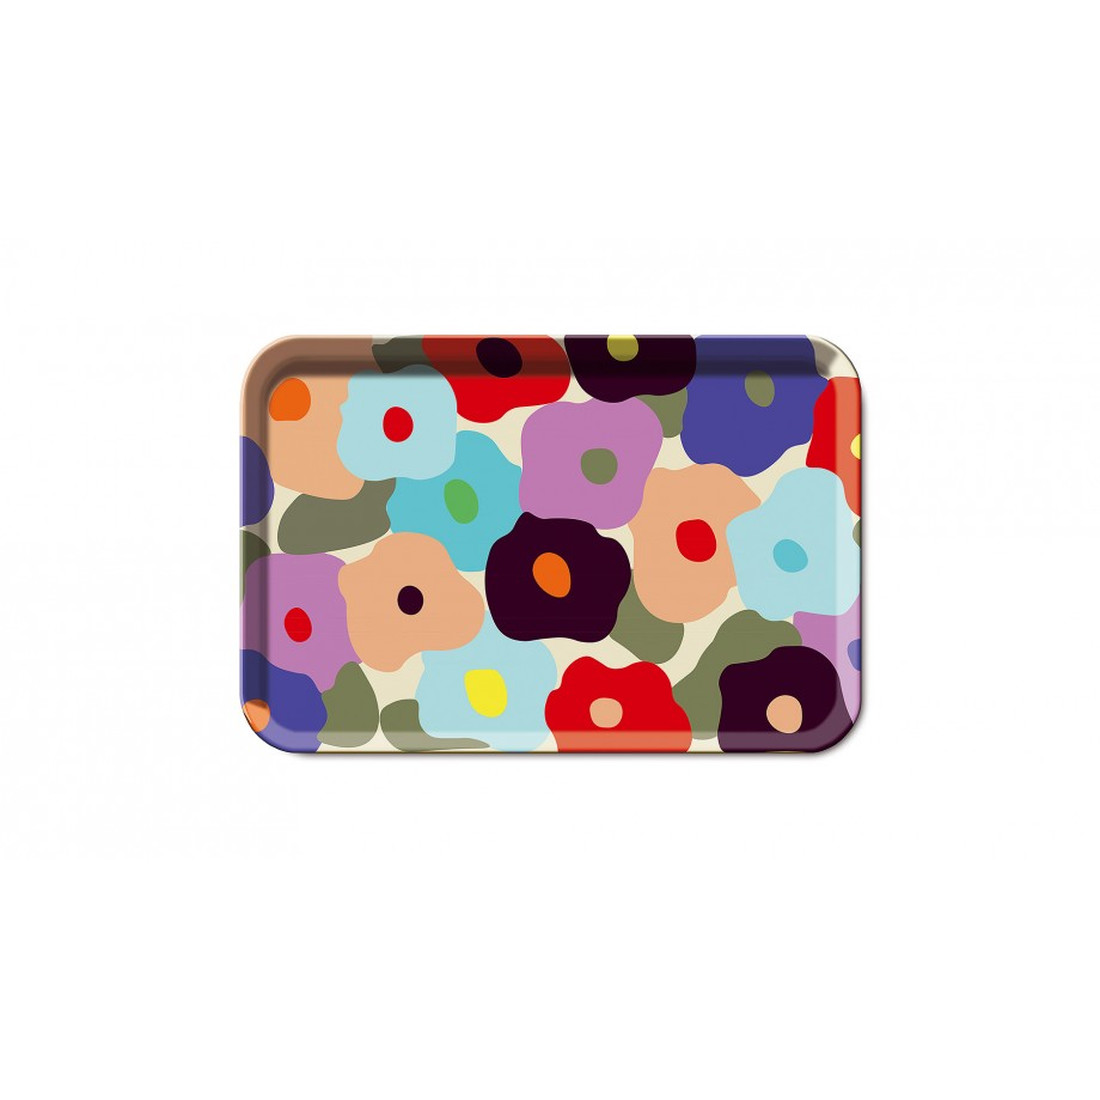 Mini Tablett Fiori by REMEMBER